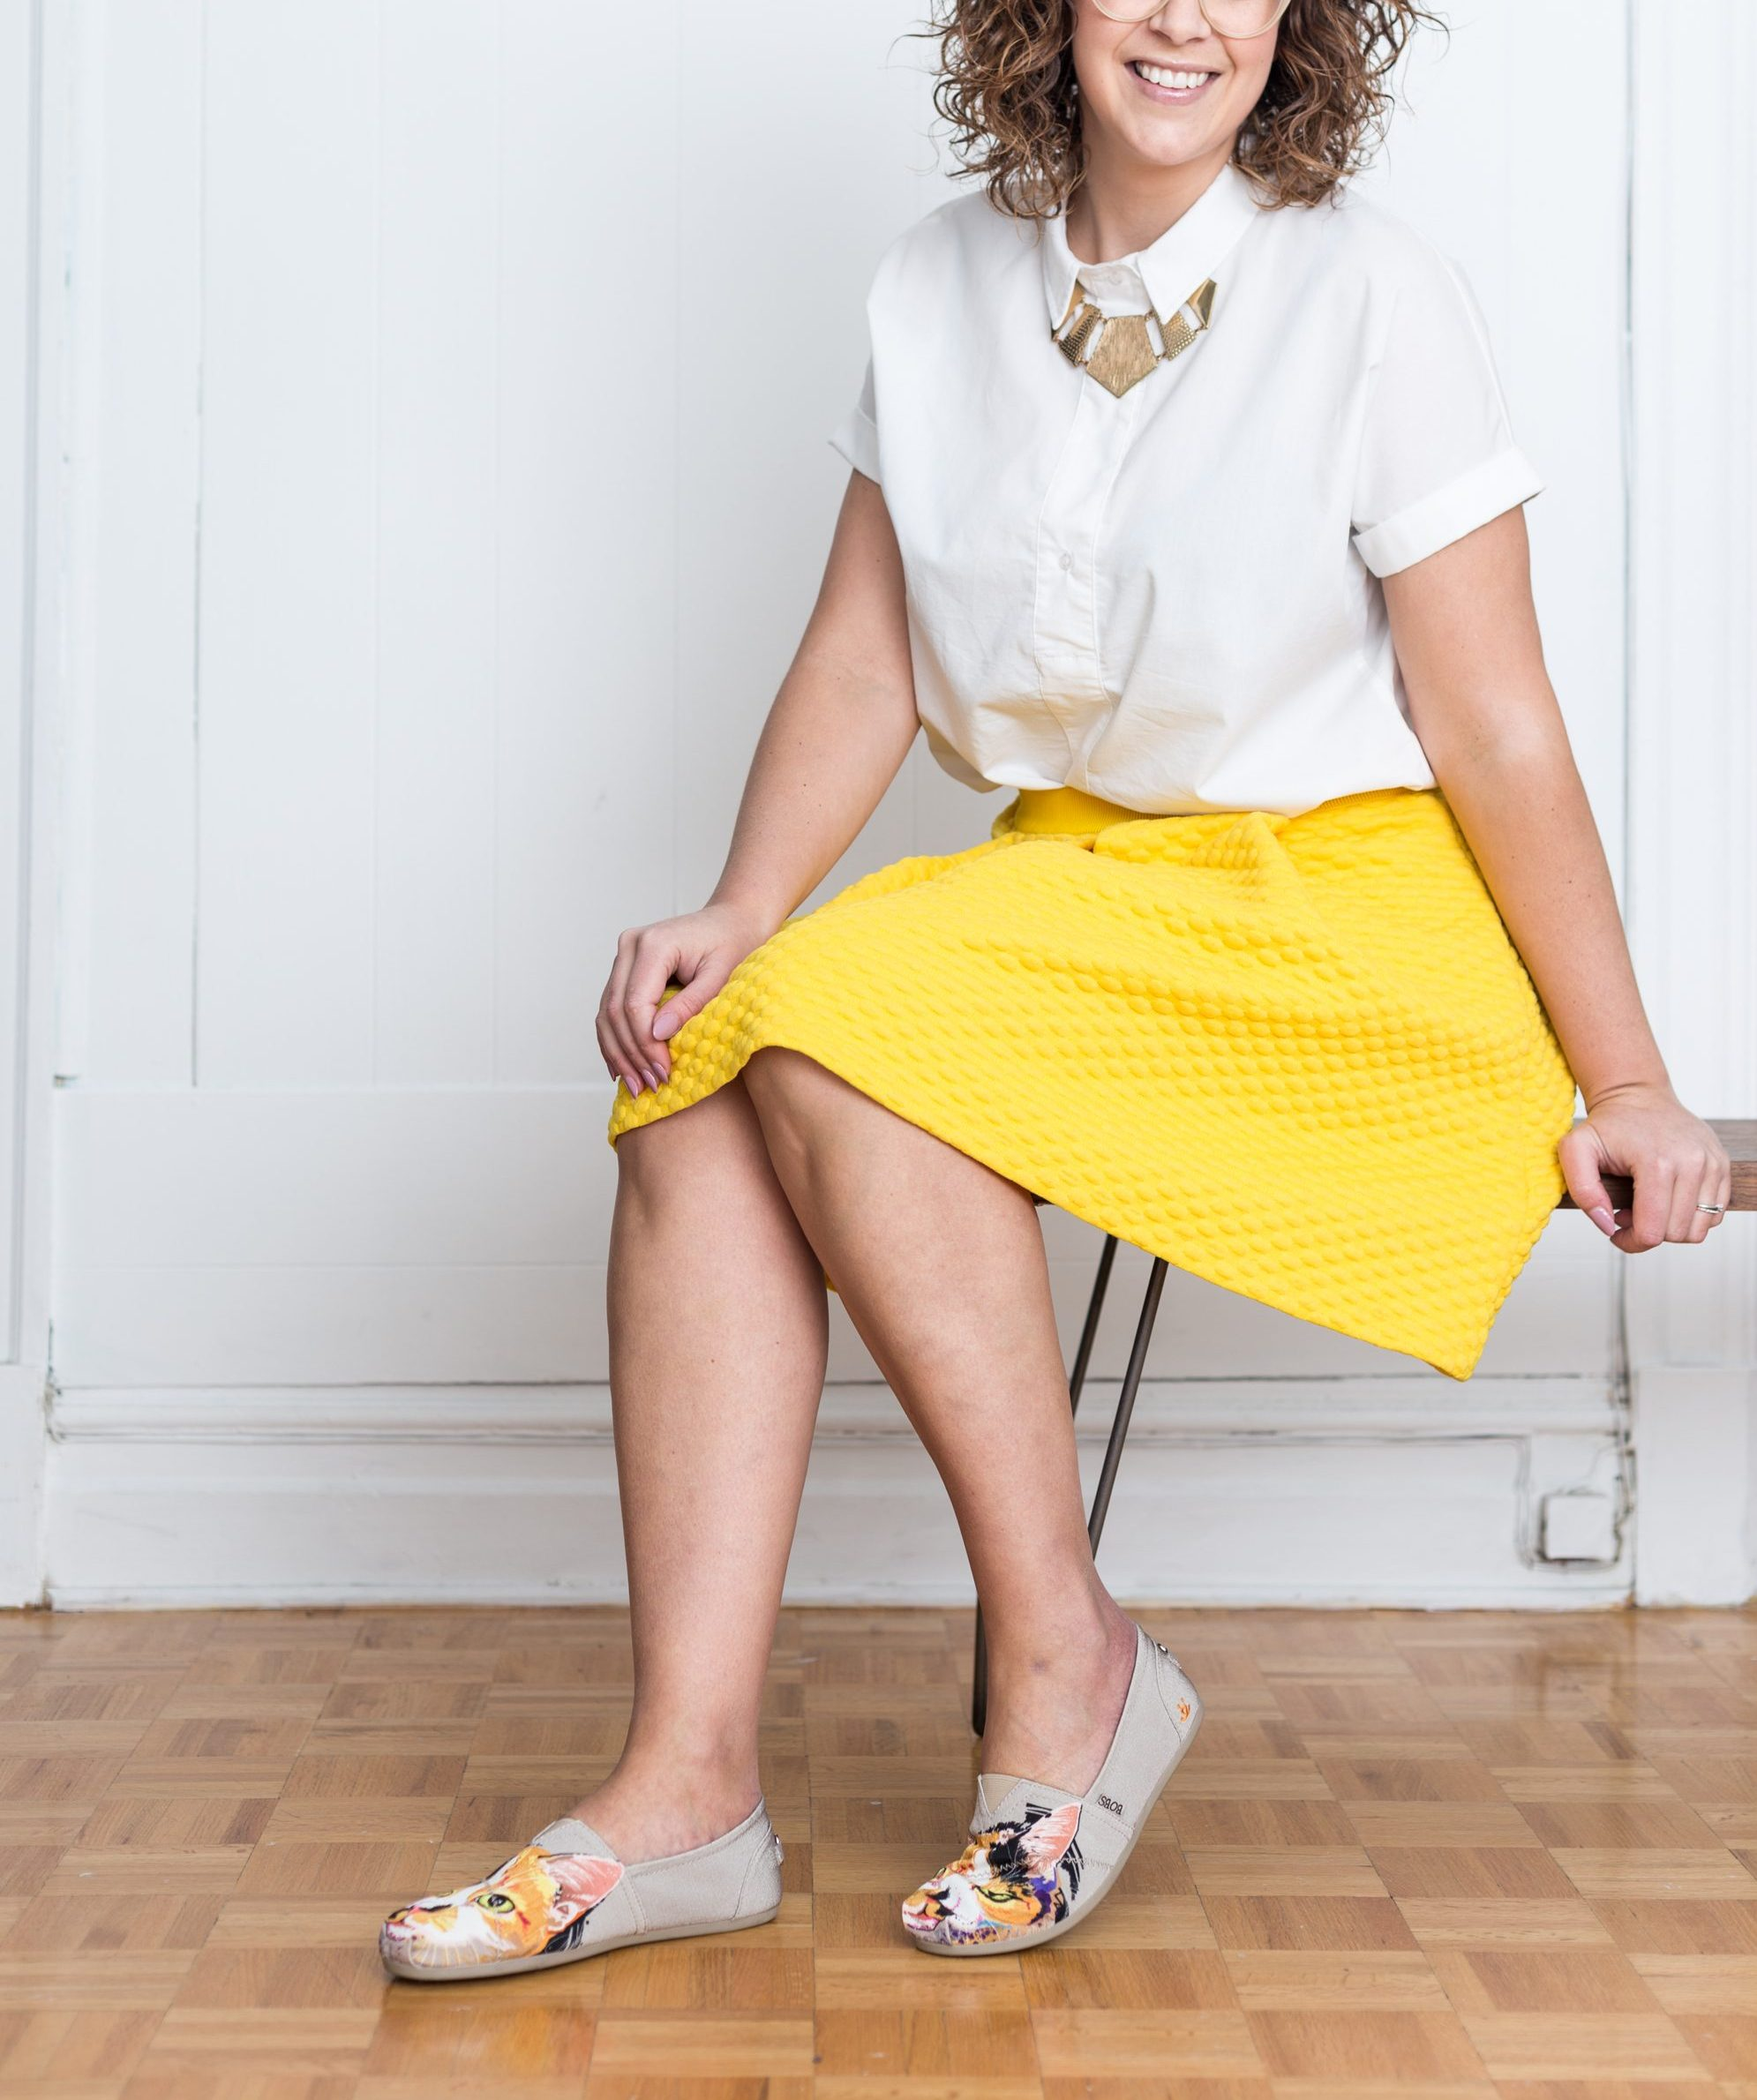 souliers-skechers-lifestyle-style1